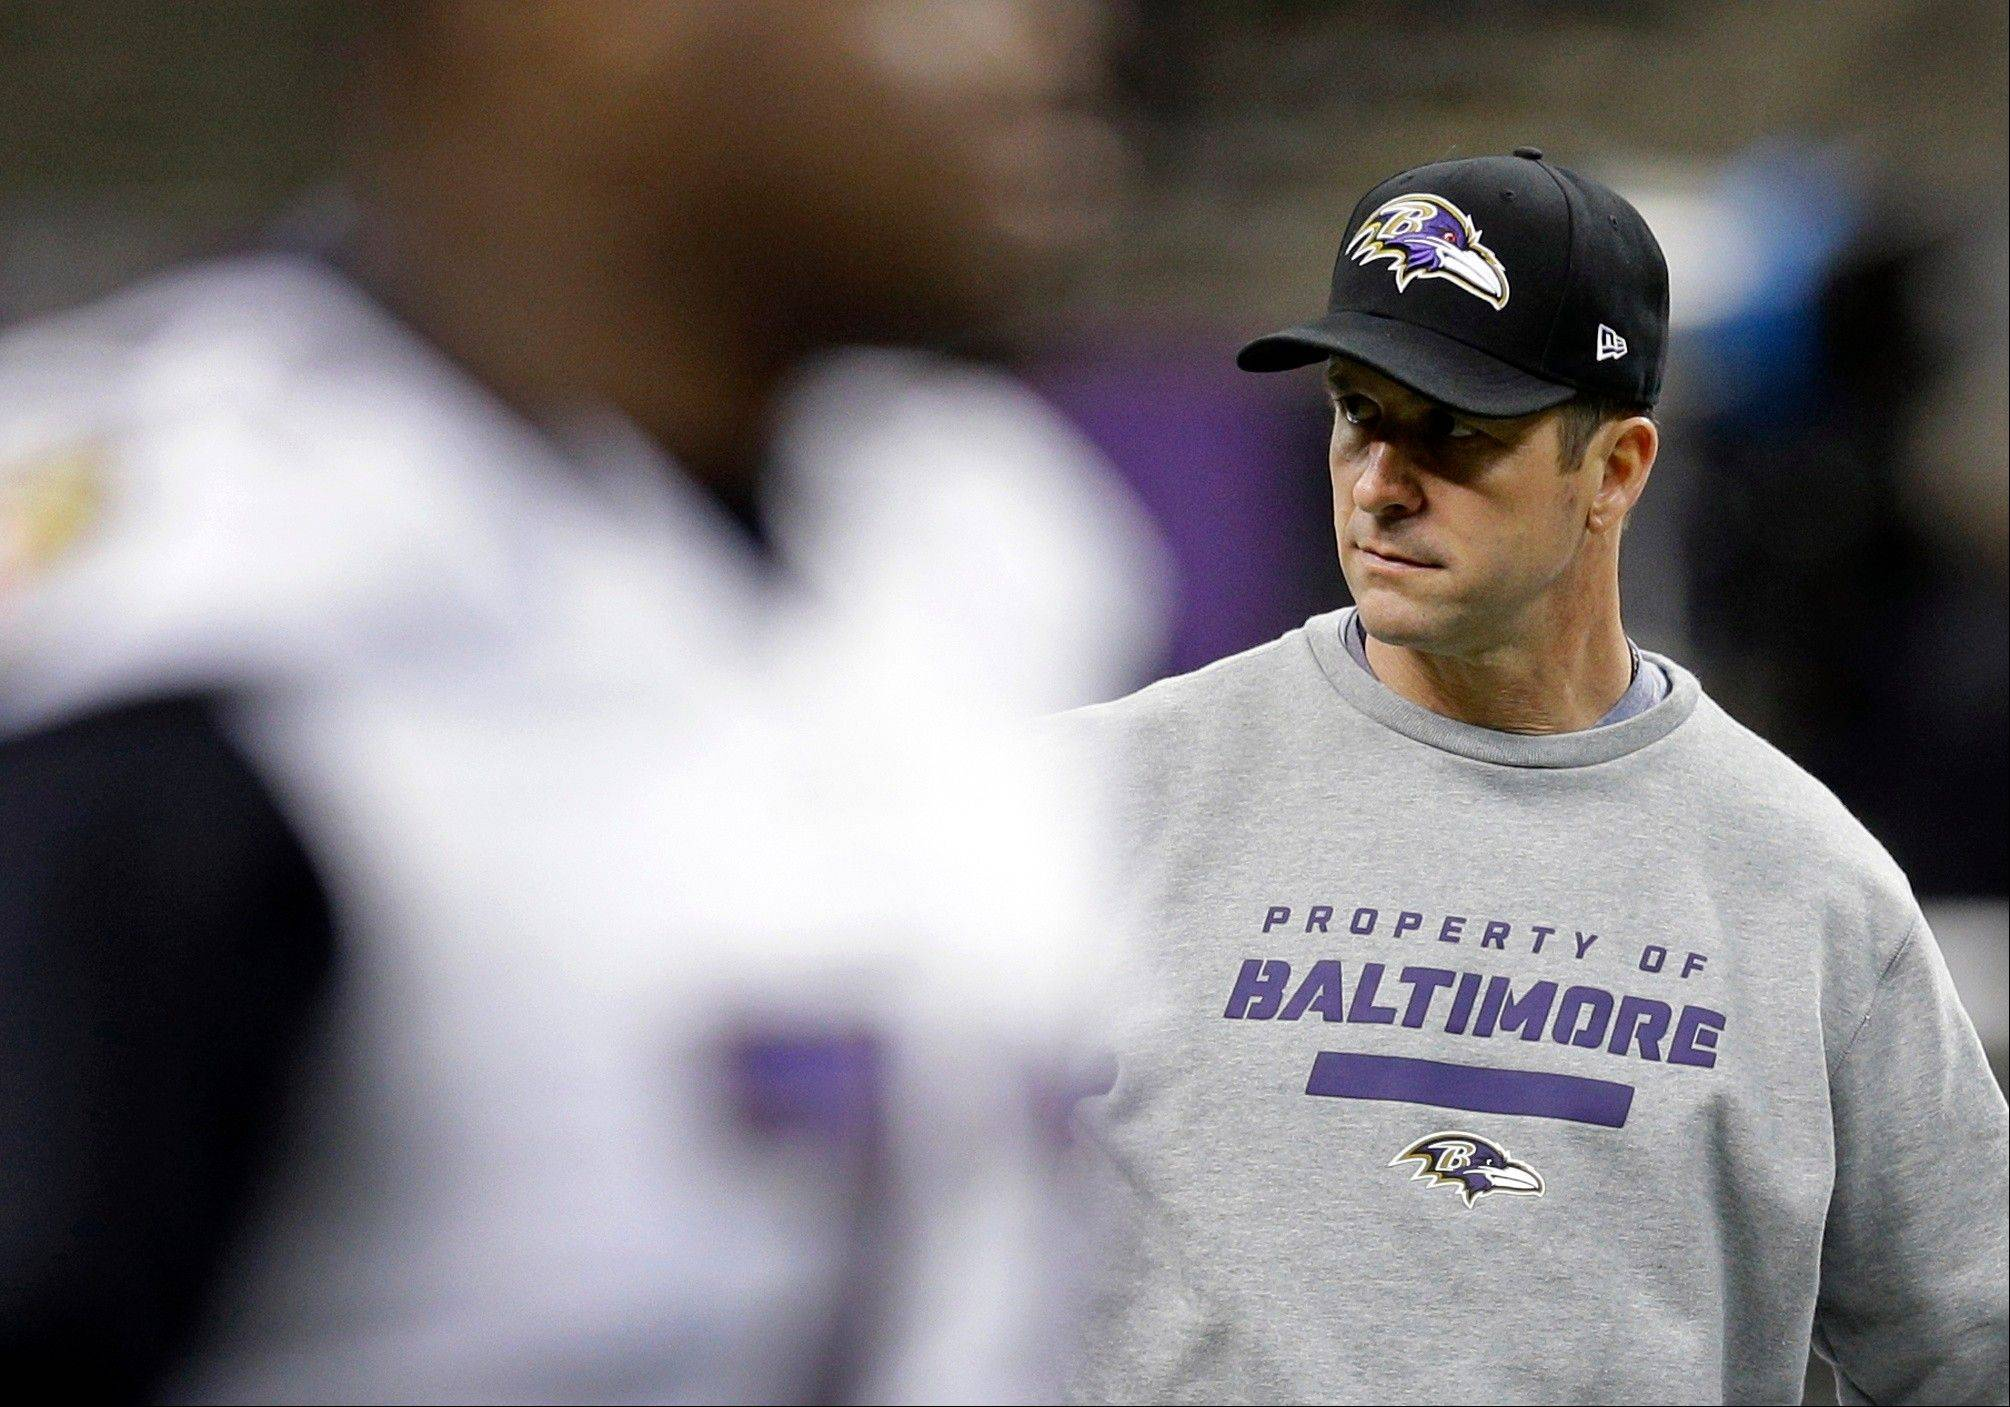 Baltimore Ravens head coach John Harbaugh looks on as his players participate in an NFL Super Bowl XLVII walkthrough.